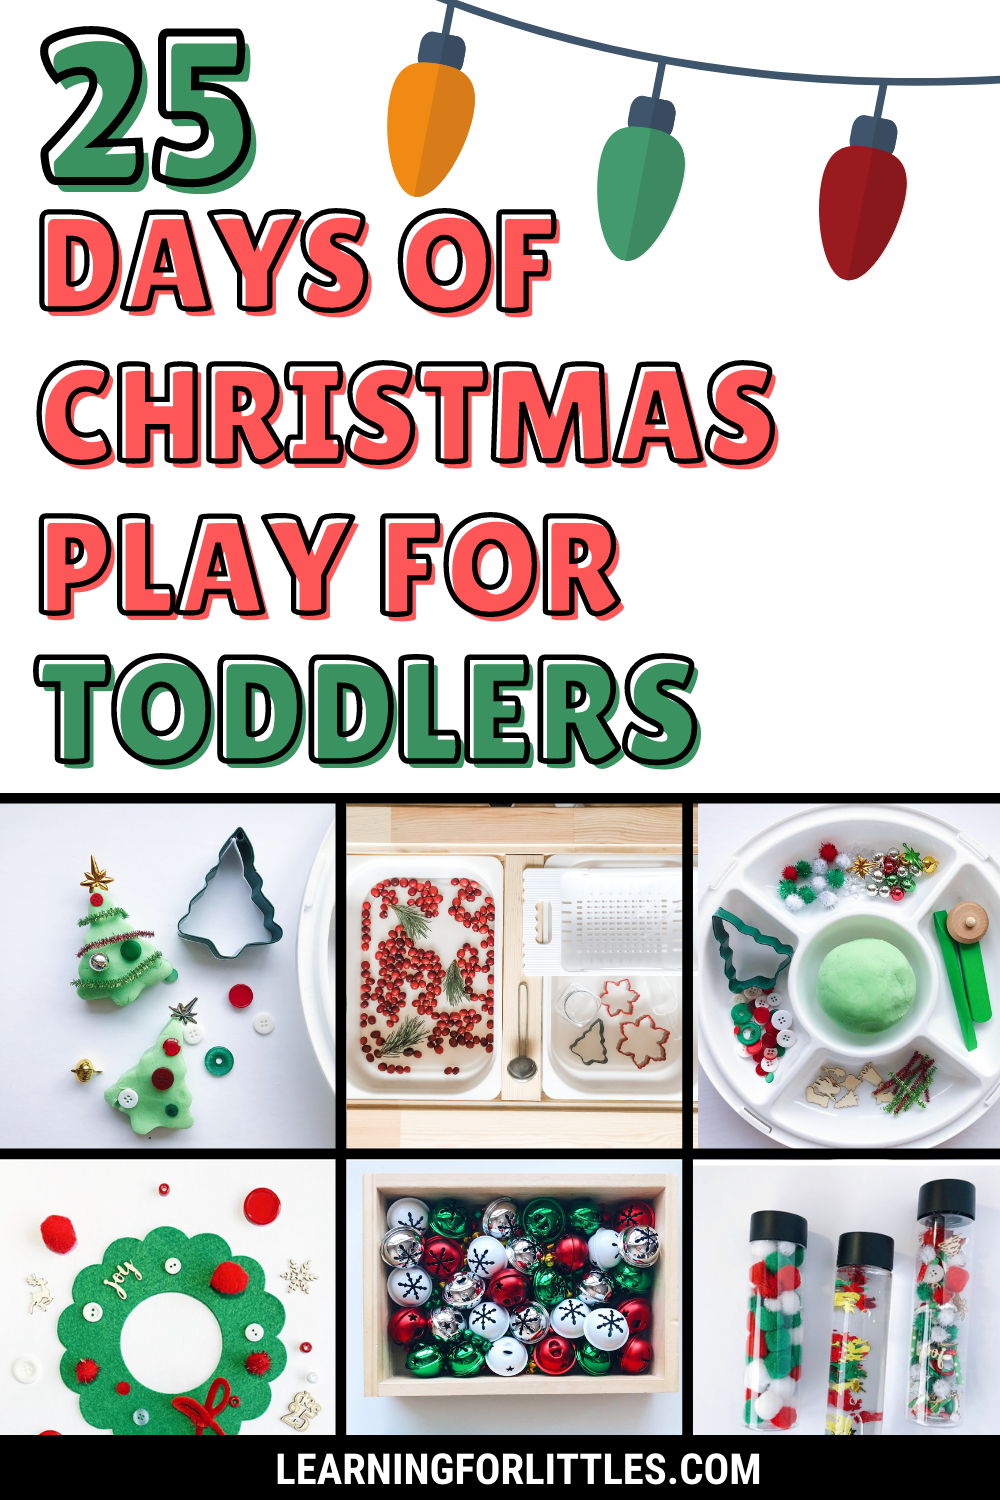 25 Days of Christmas Play Ideas for Toddlers